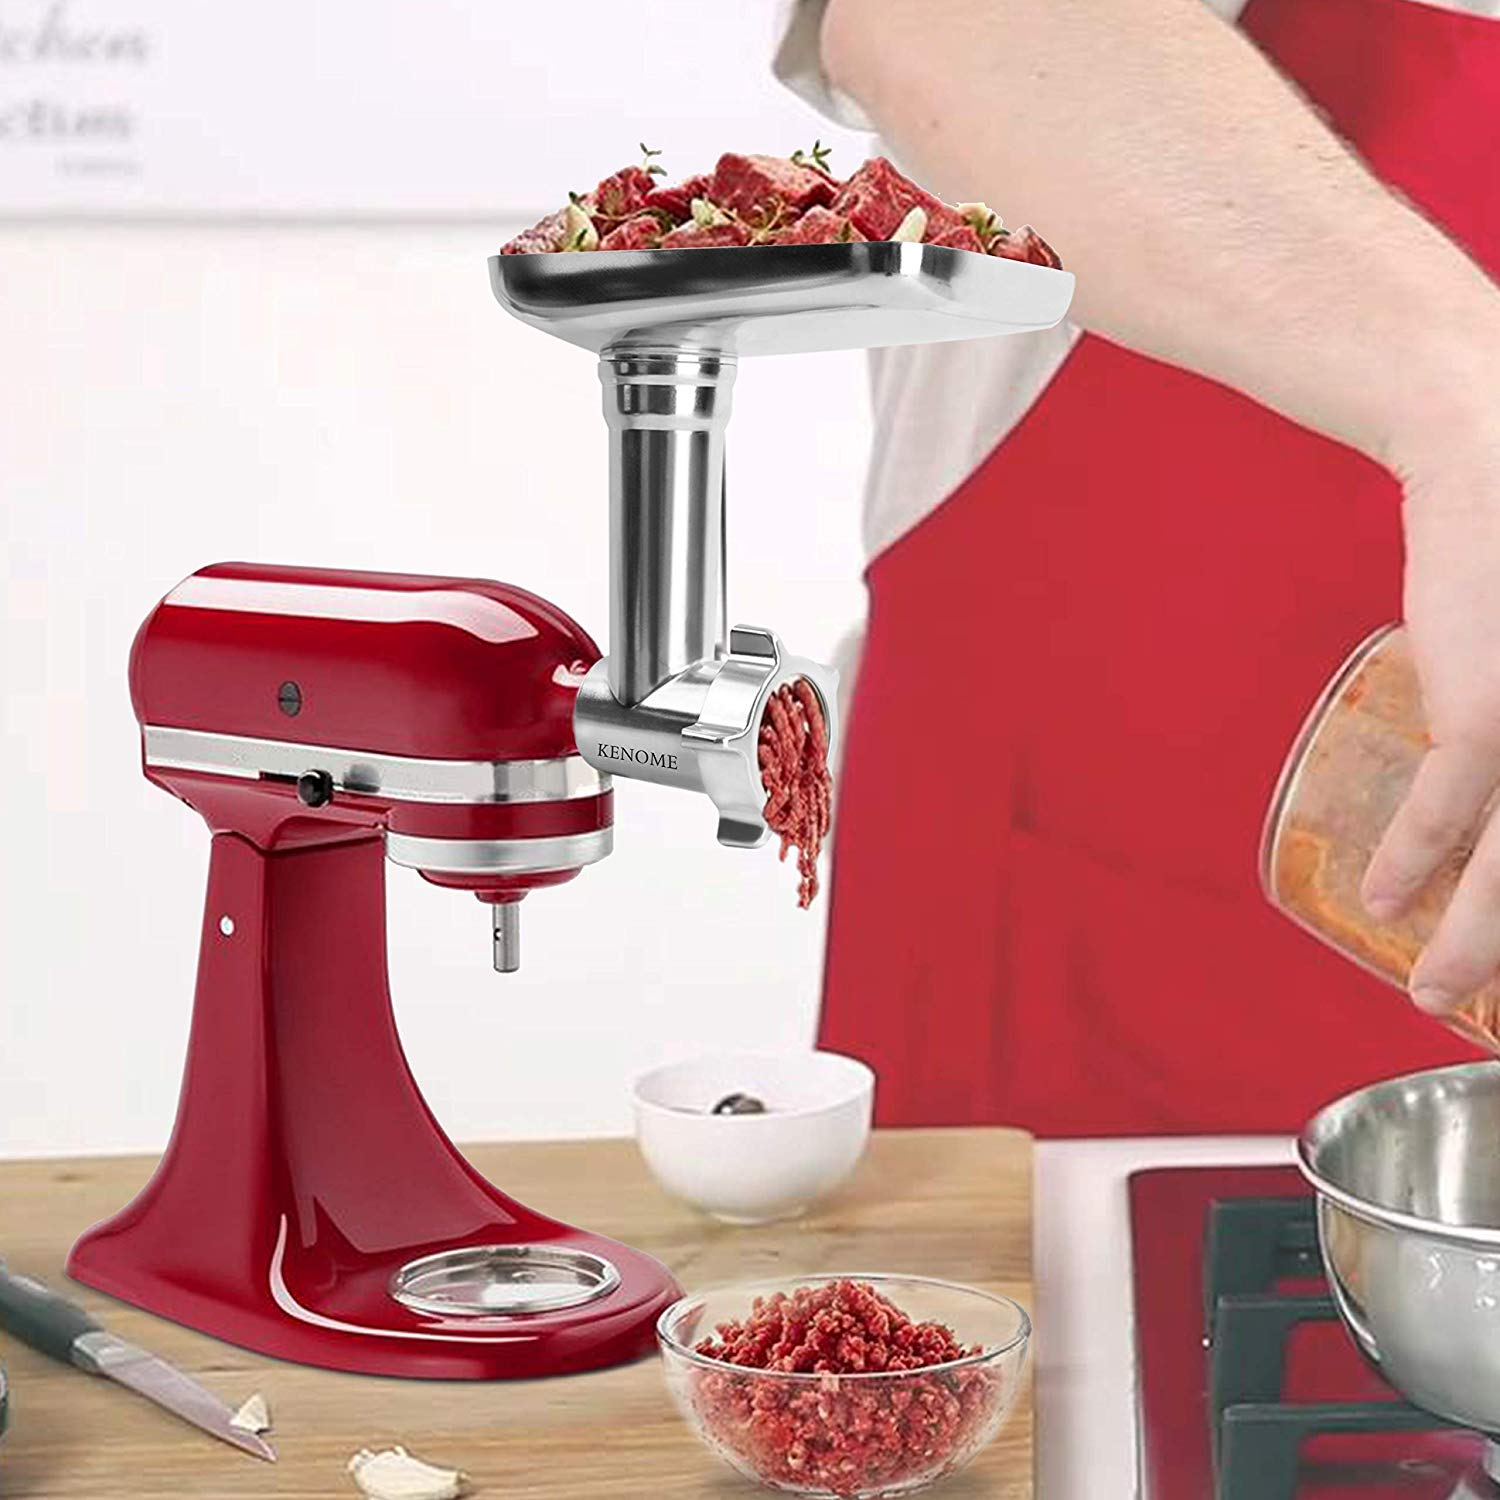 Metal Food Grinder Attachment for KitchenAid Stand Mixers - meat grinders